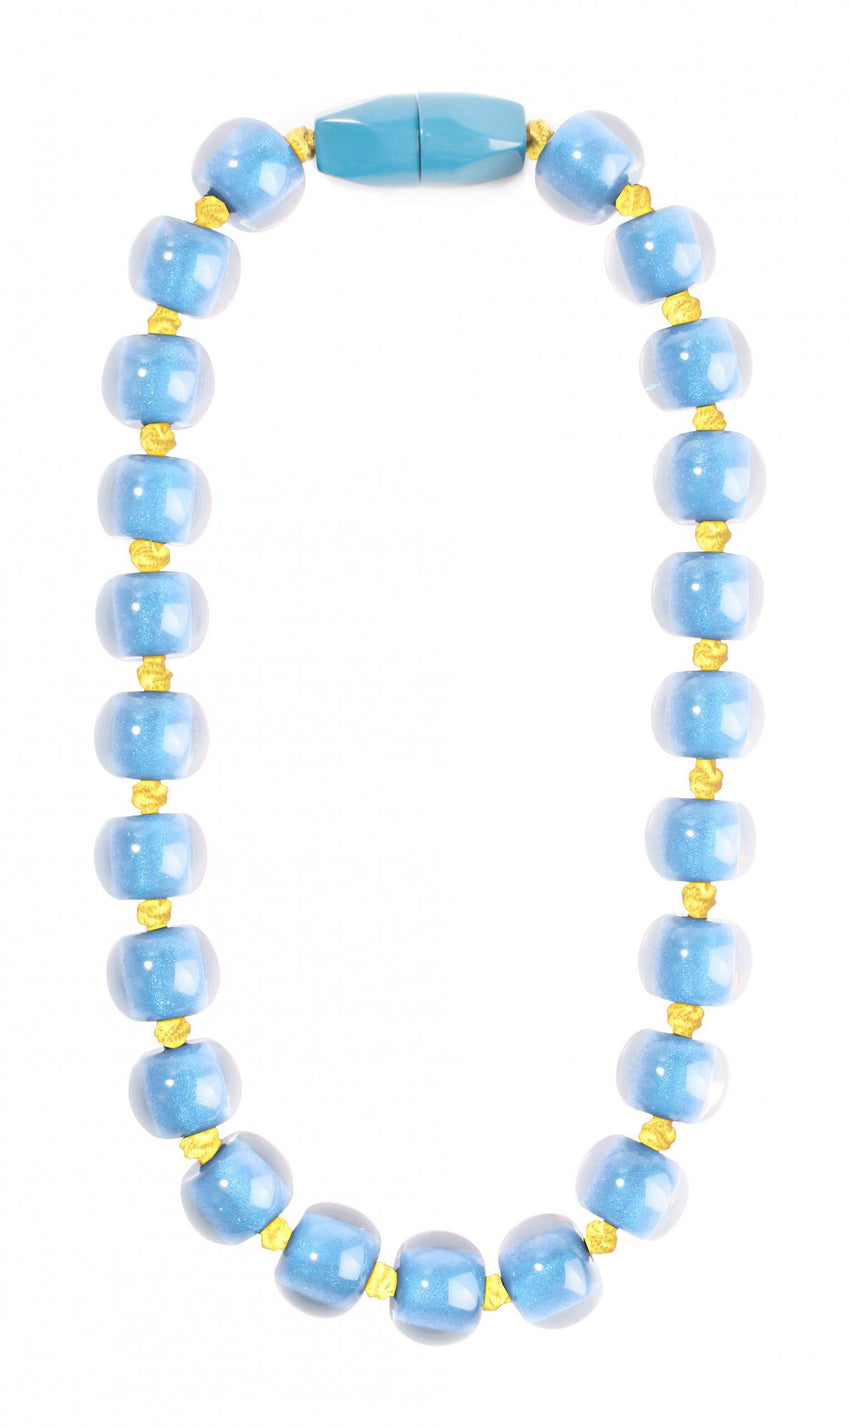 40101189192Q23 Necklace 118 colorfulbeads2 Blue Beads Olive Cord 9192 Q23